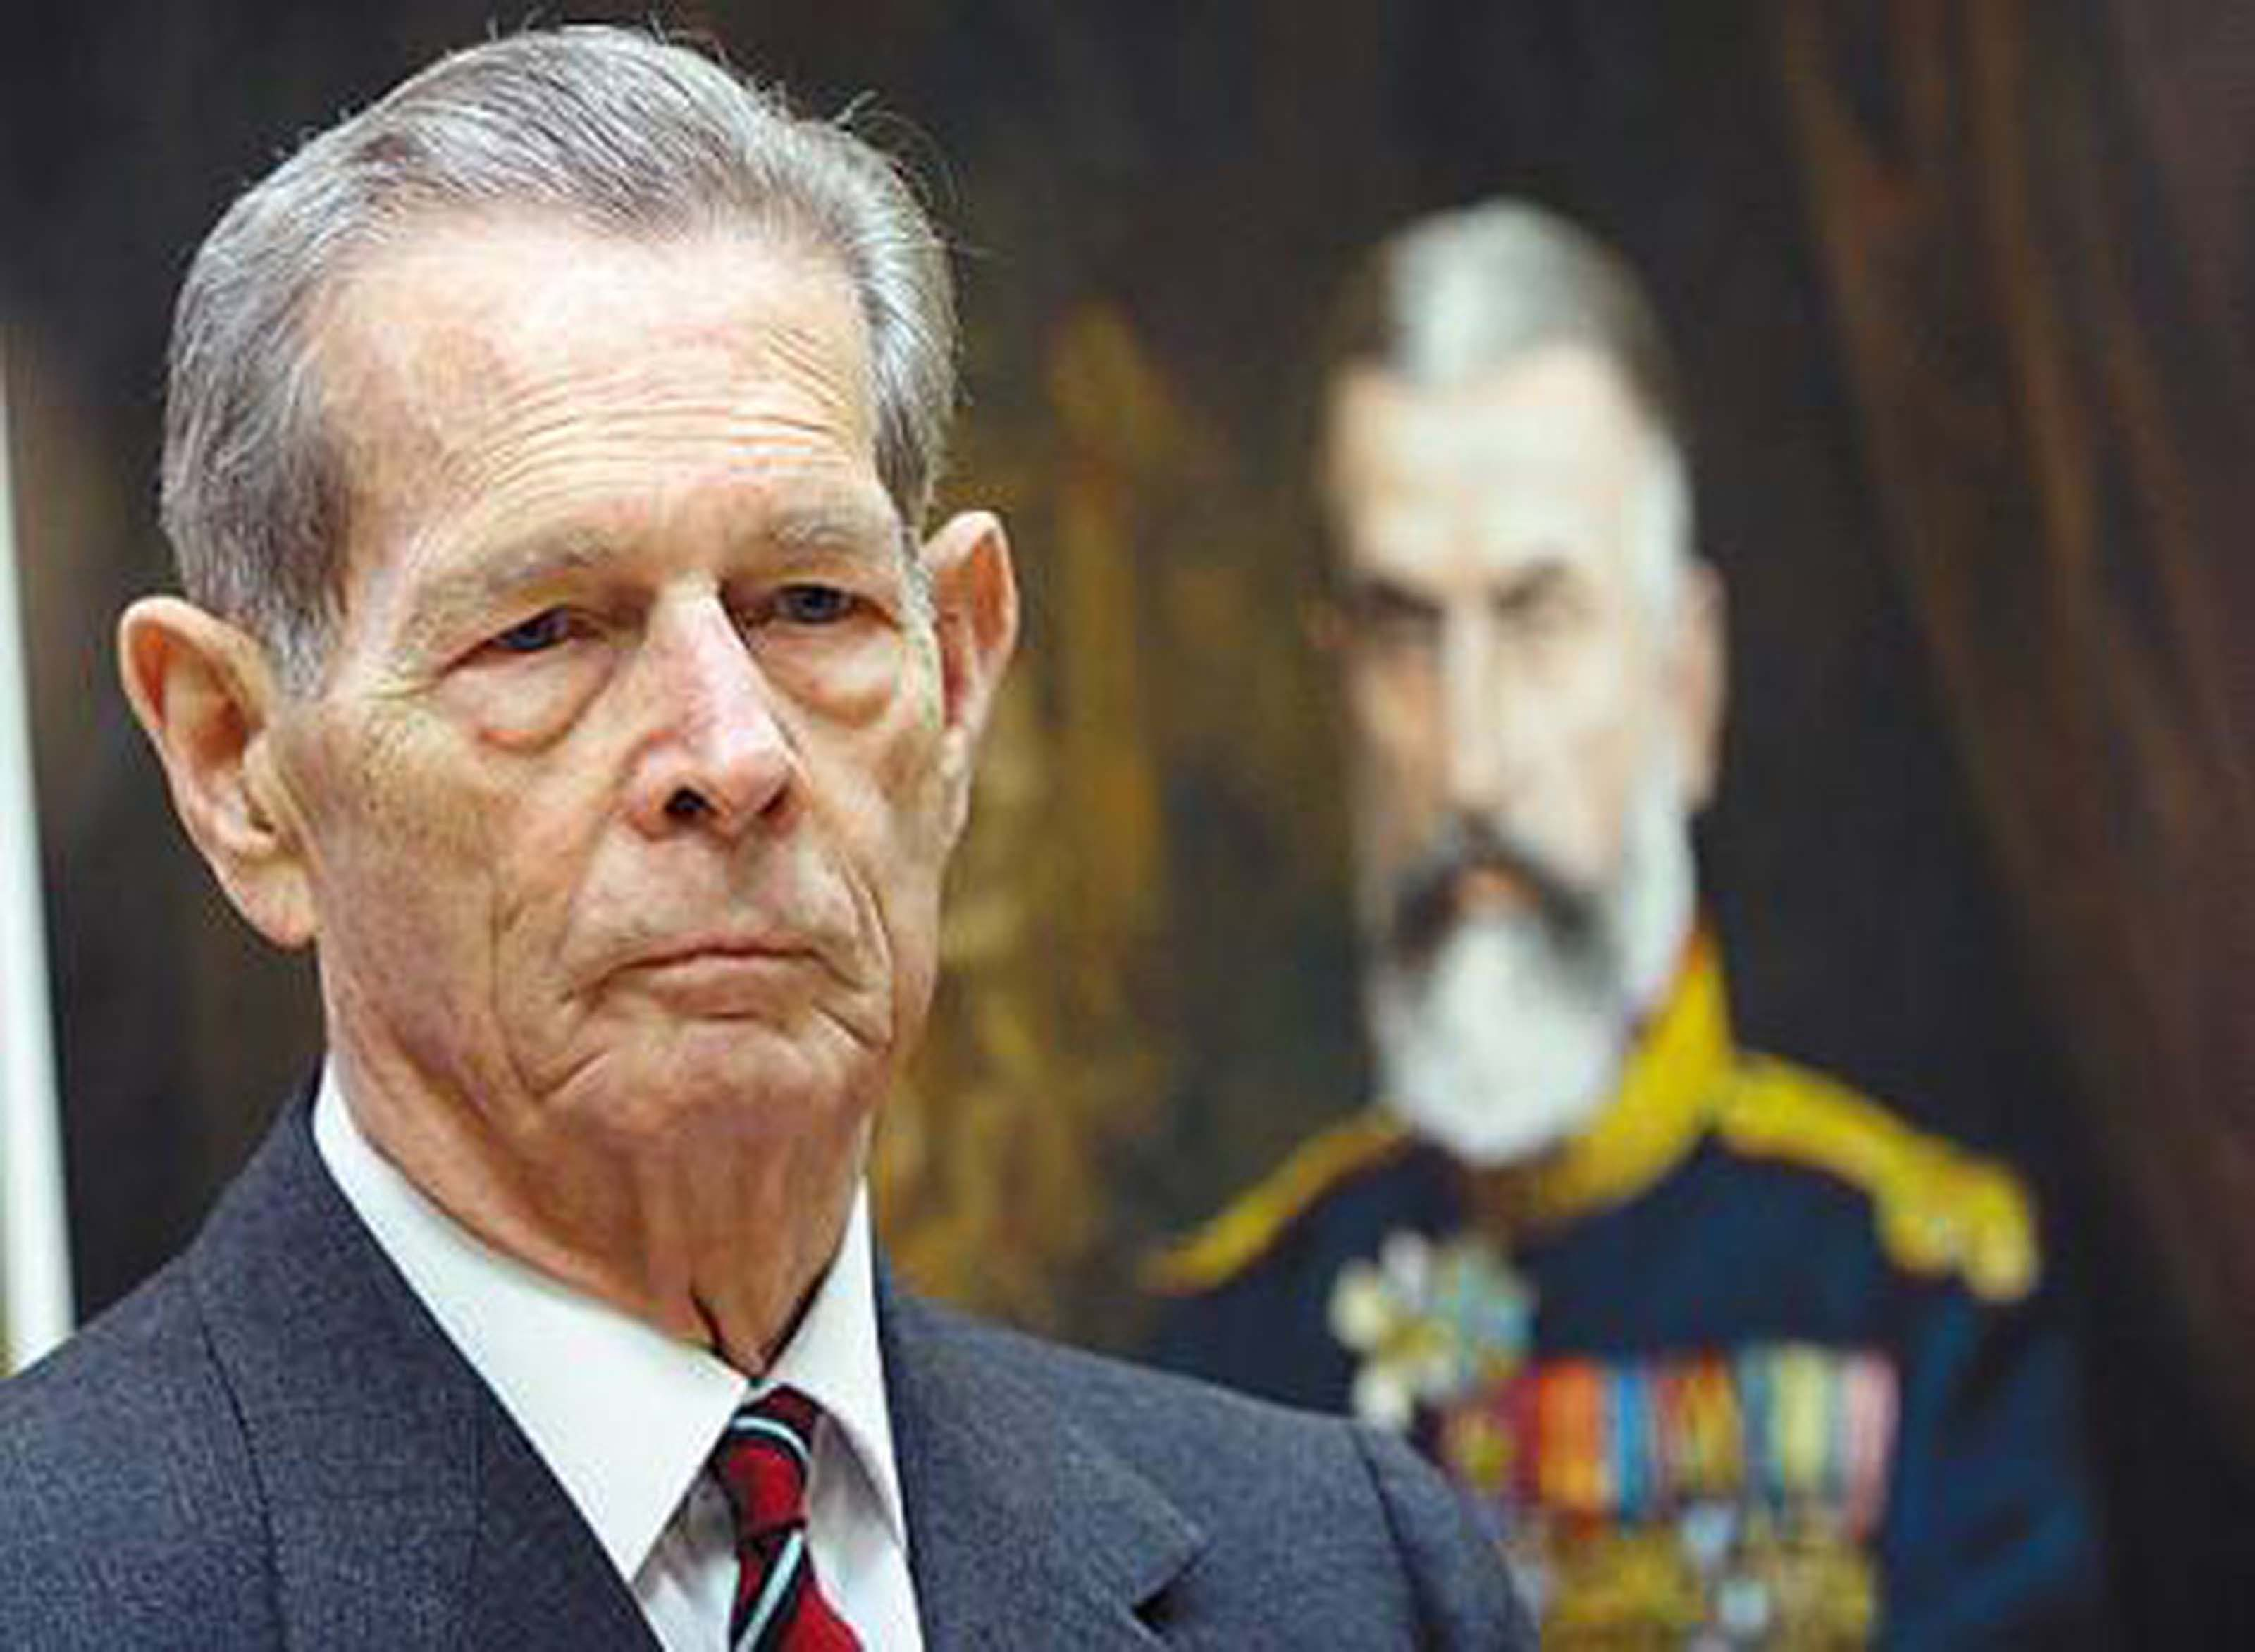 Romania's severely ill king withdraws from public life